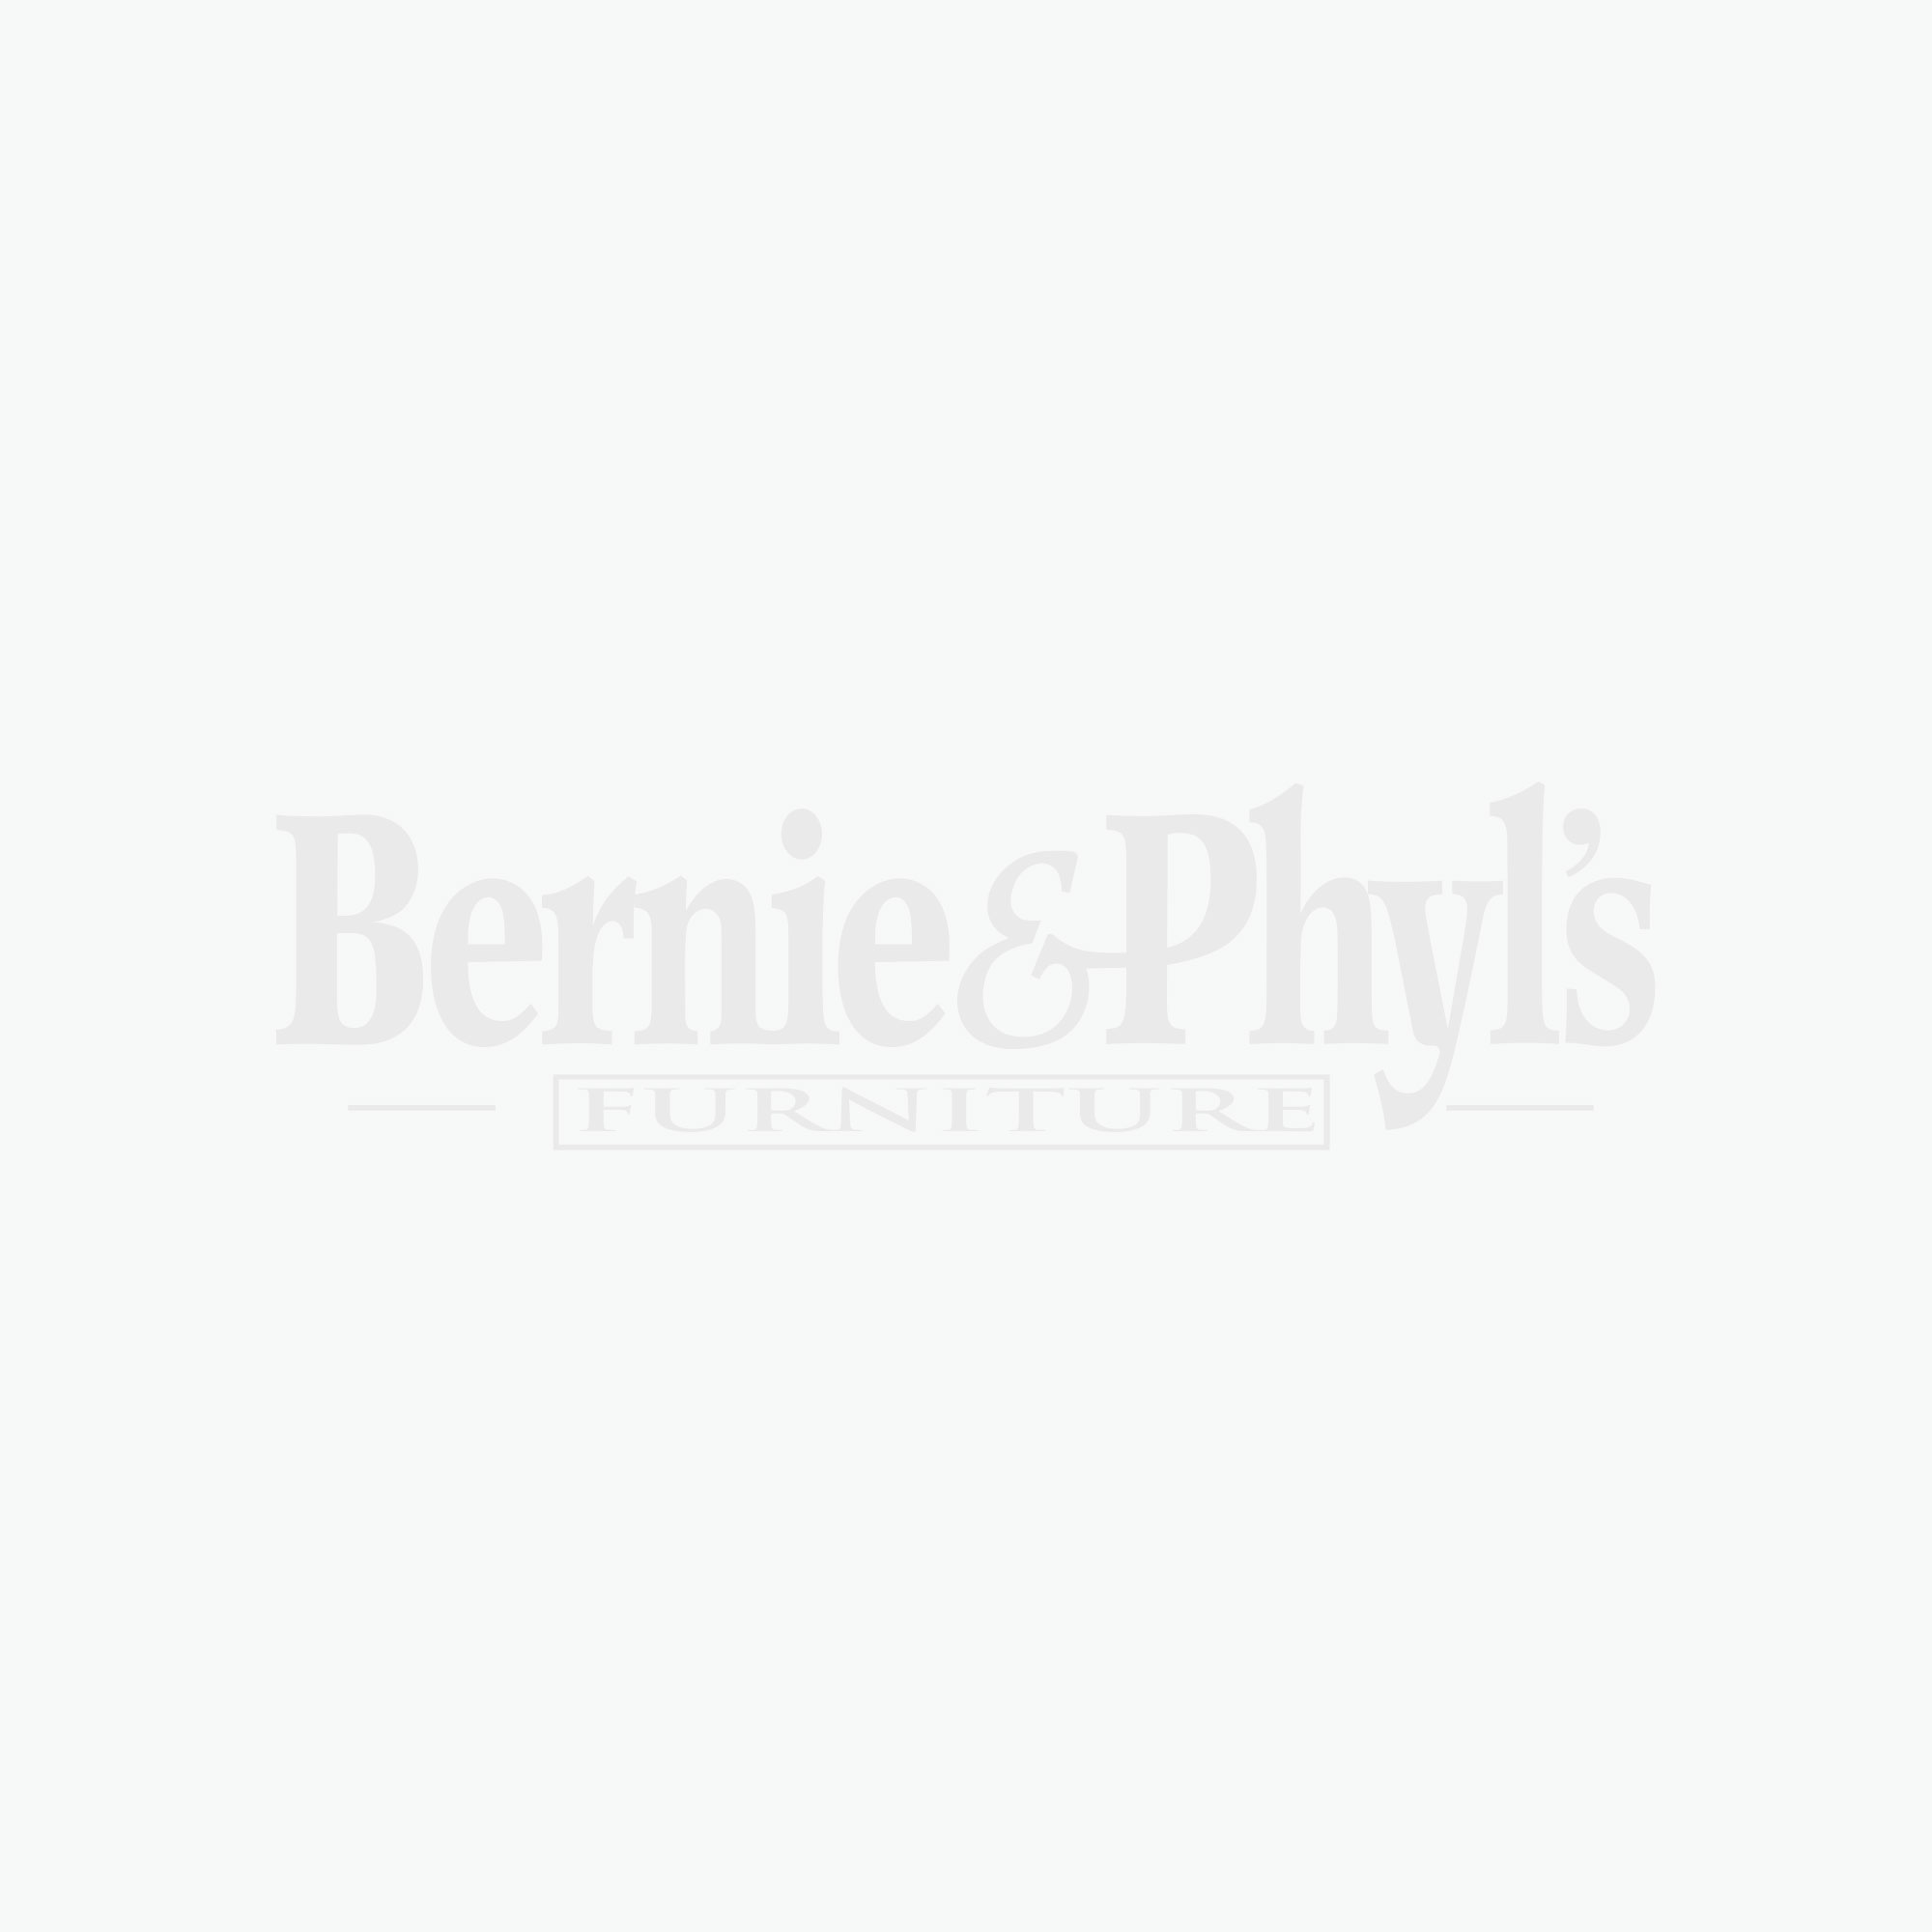 Rokane Counter Stool Bernie Amp Phyl S Furniture By